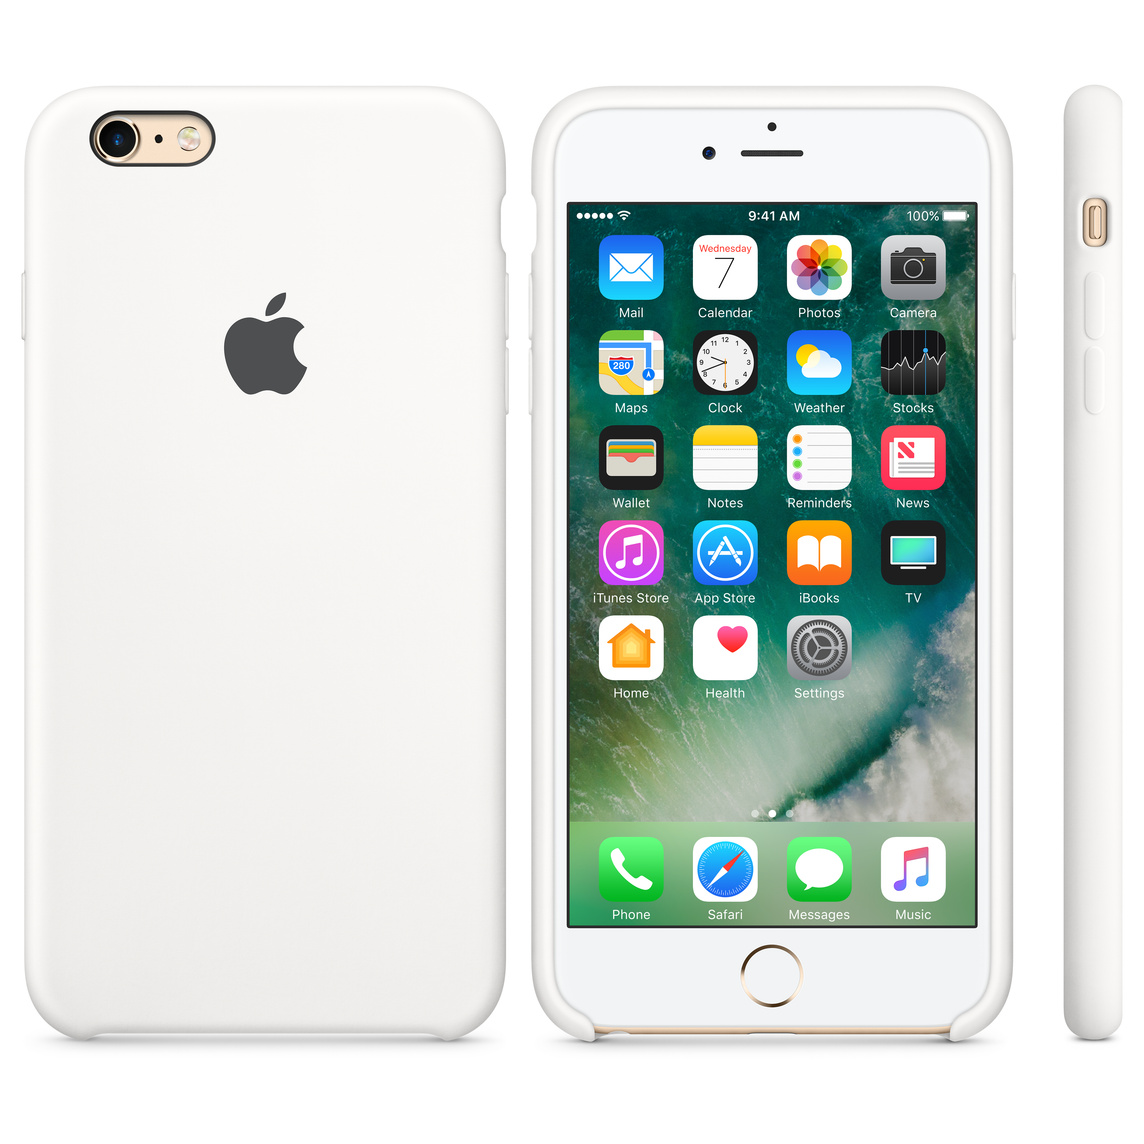 online retailer 0a57a 647c7 iPhone 6 / 6s Silicone Case - White